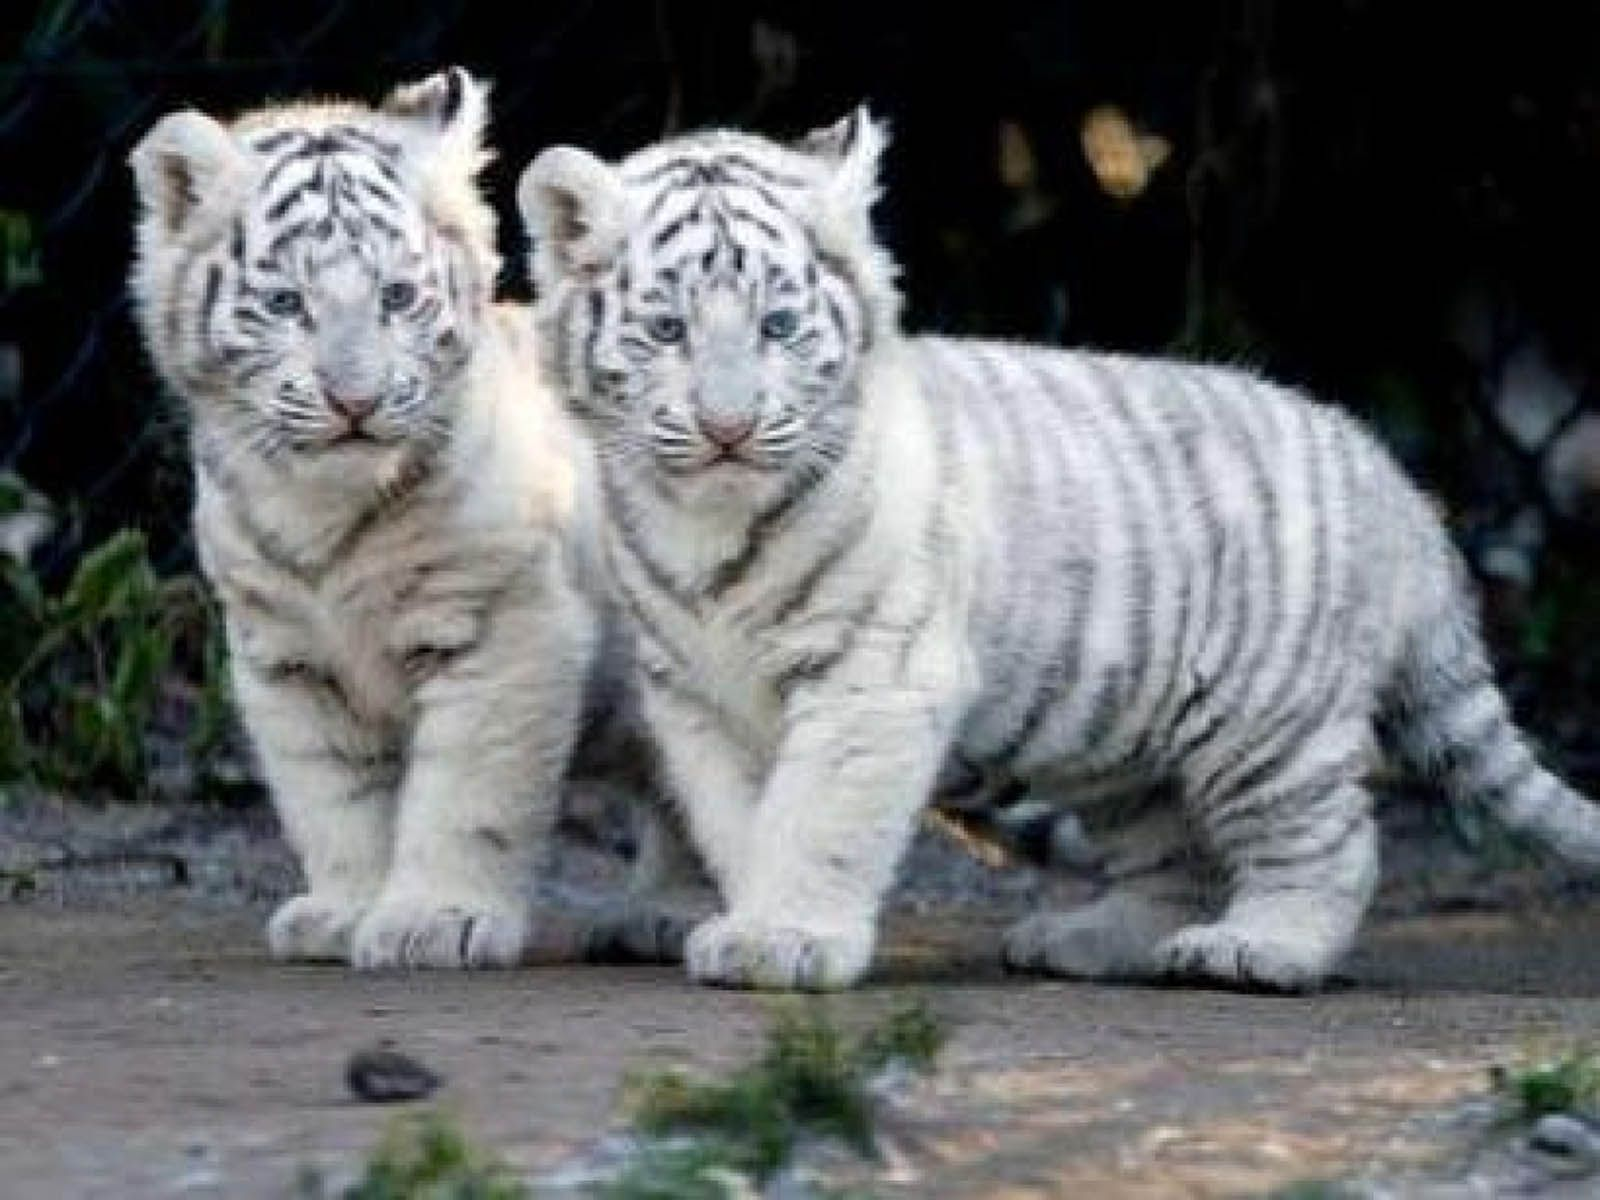 White Tiger Wallpaper for Desktop 2532 HD Wallpaper Site